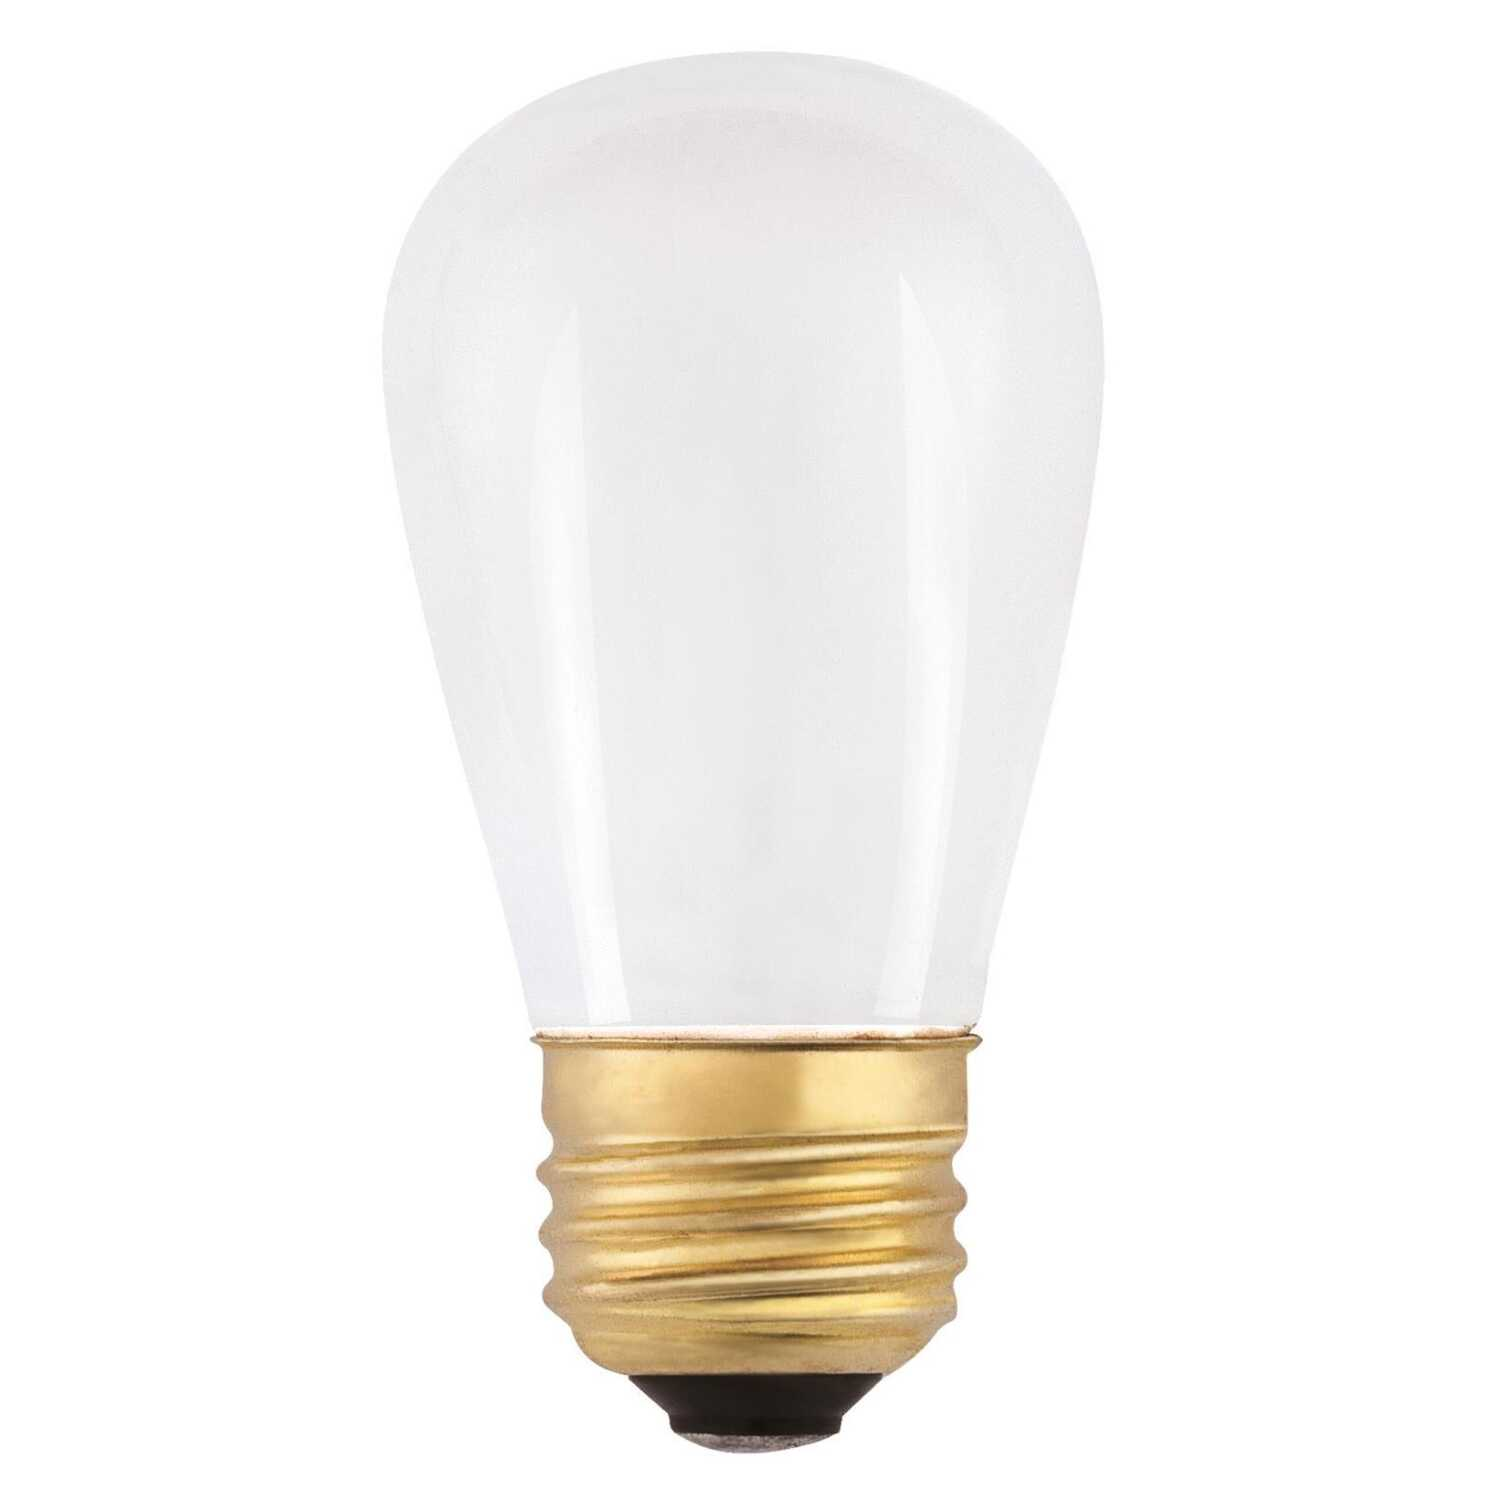 Westinghouse  11 watts S14  Speciality  Incandescent Bulb  E26 (Medium)  White  1 pk